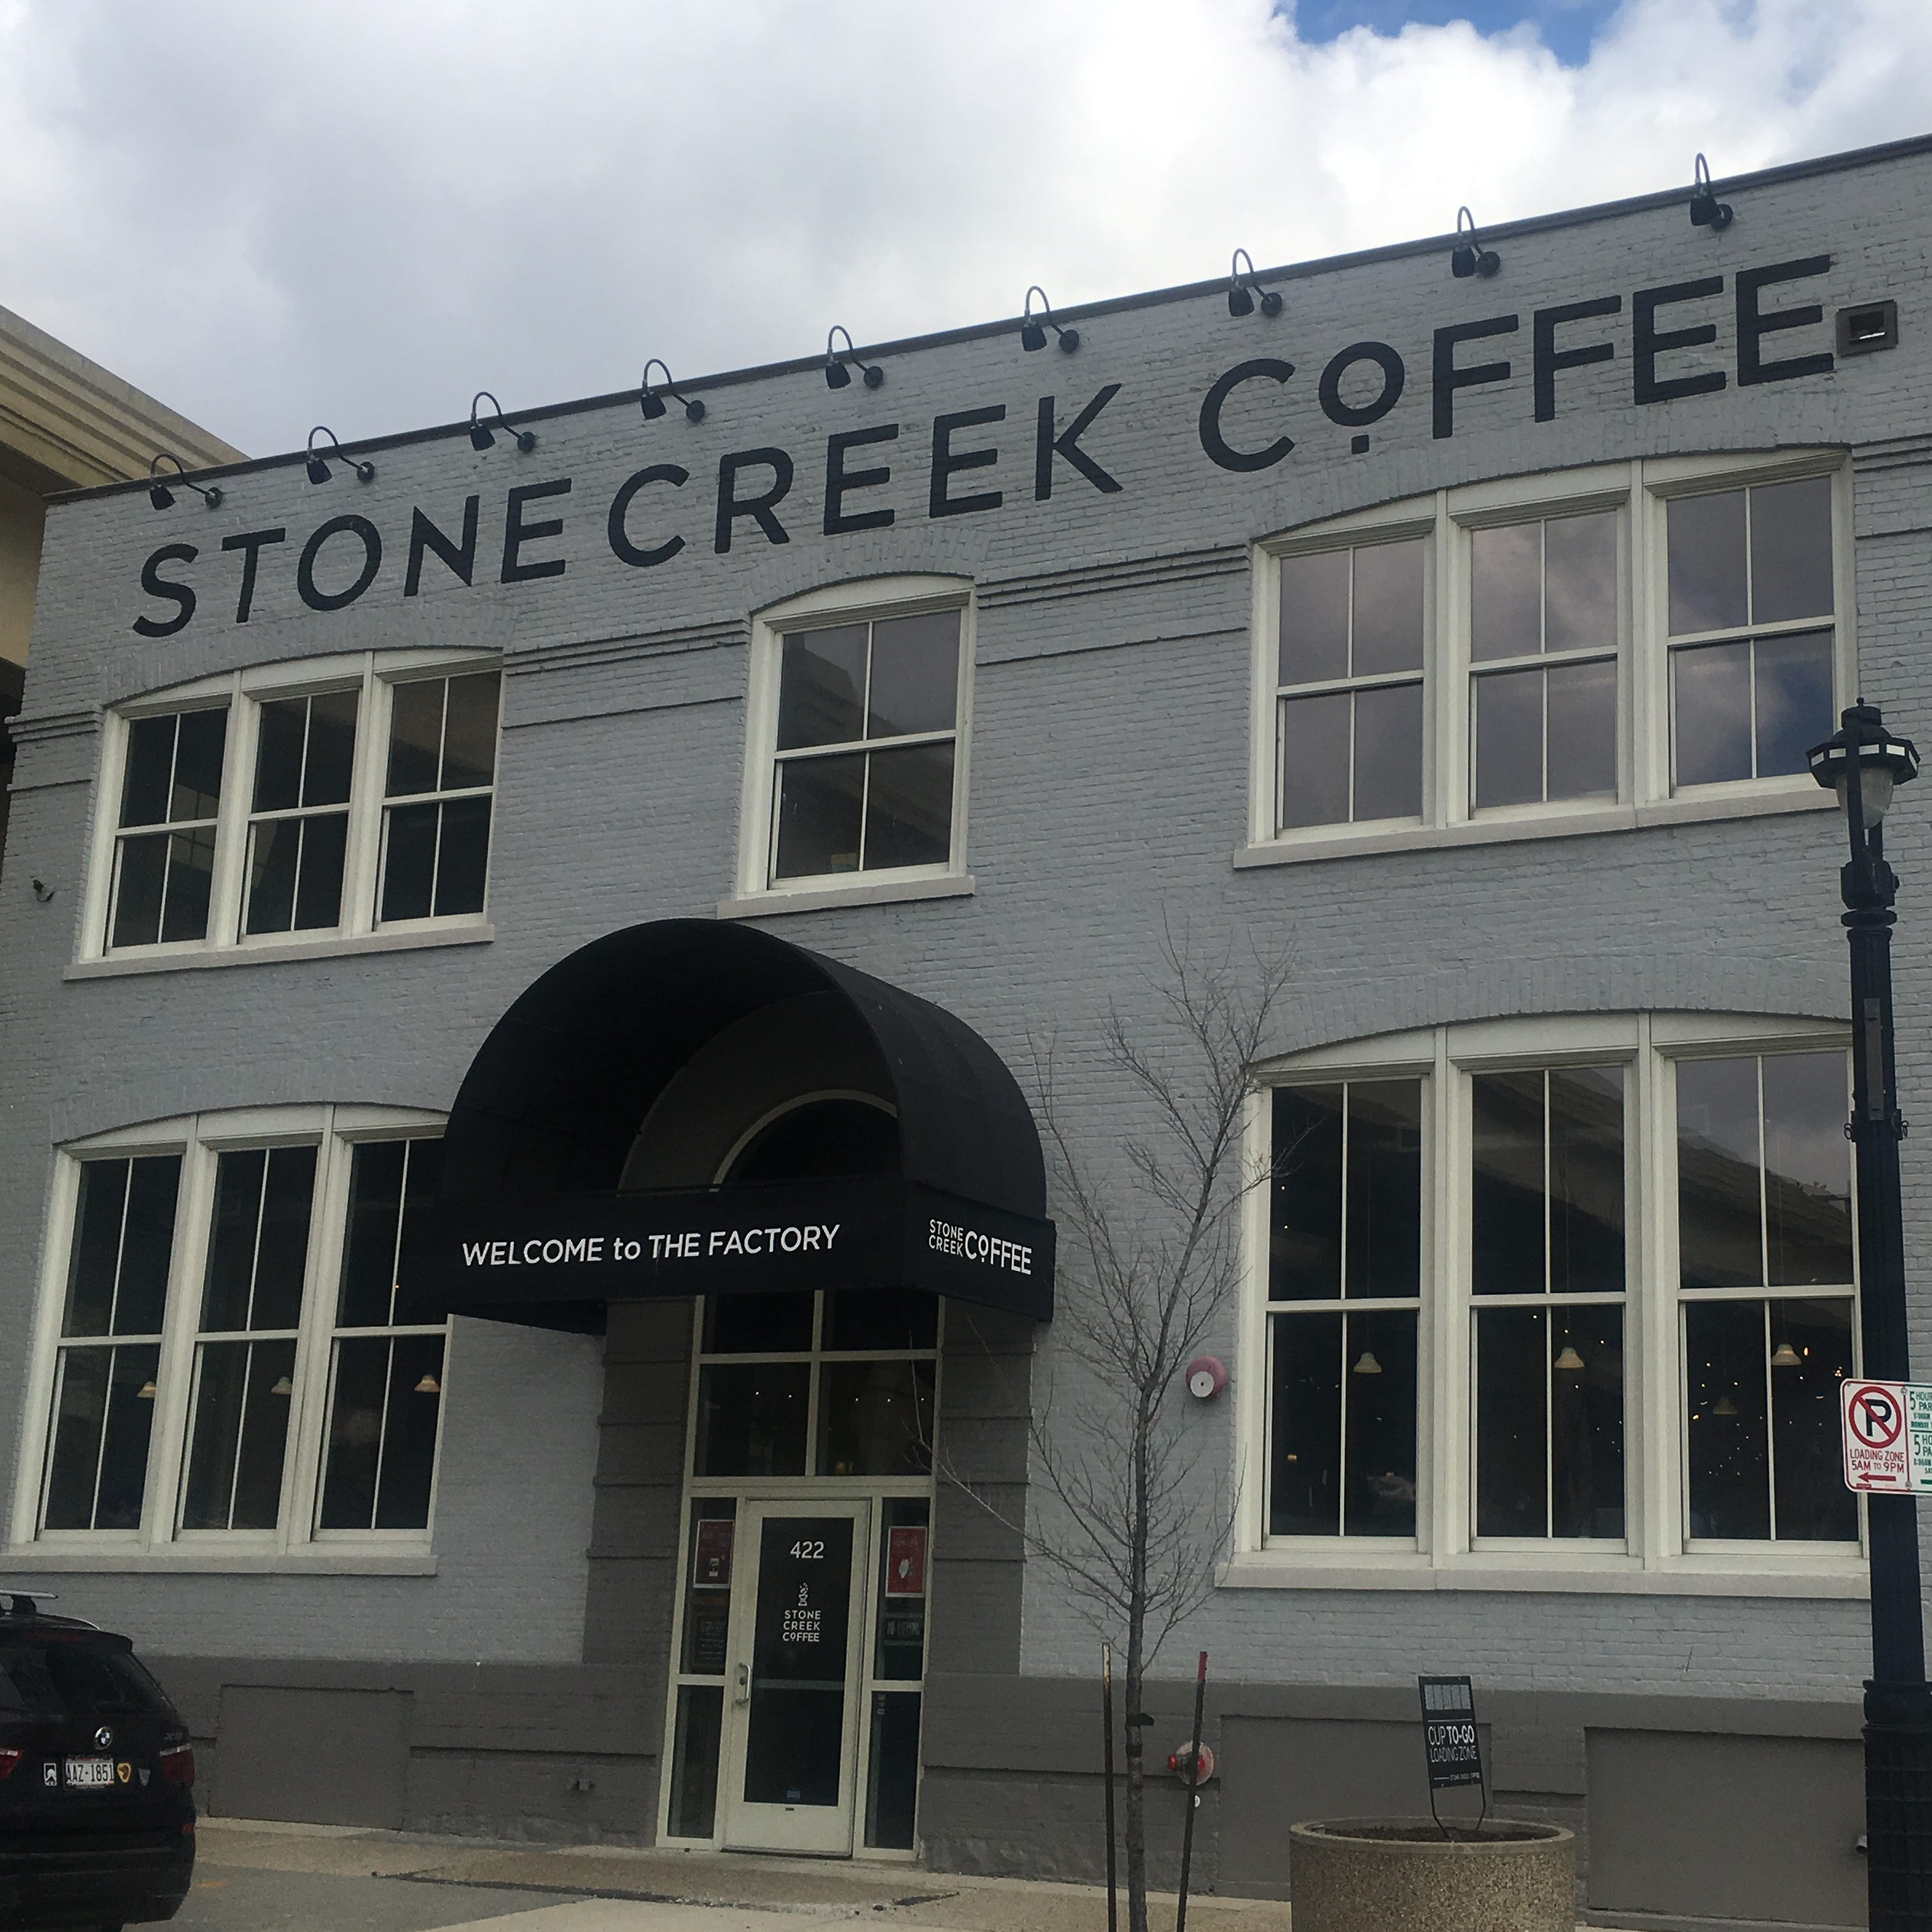 Stone Creek Coffee workers will begin voting this week on whether to unionize.